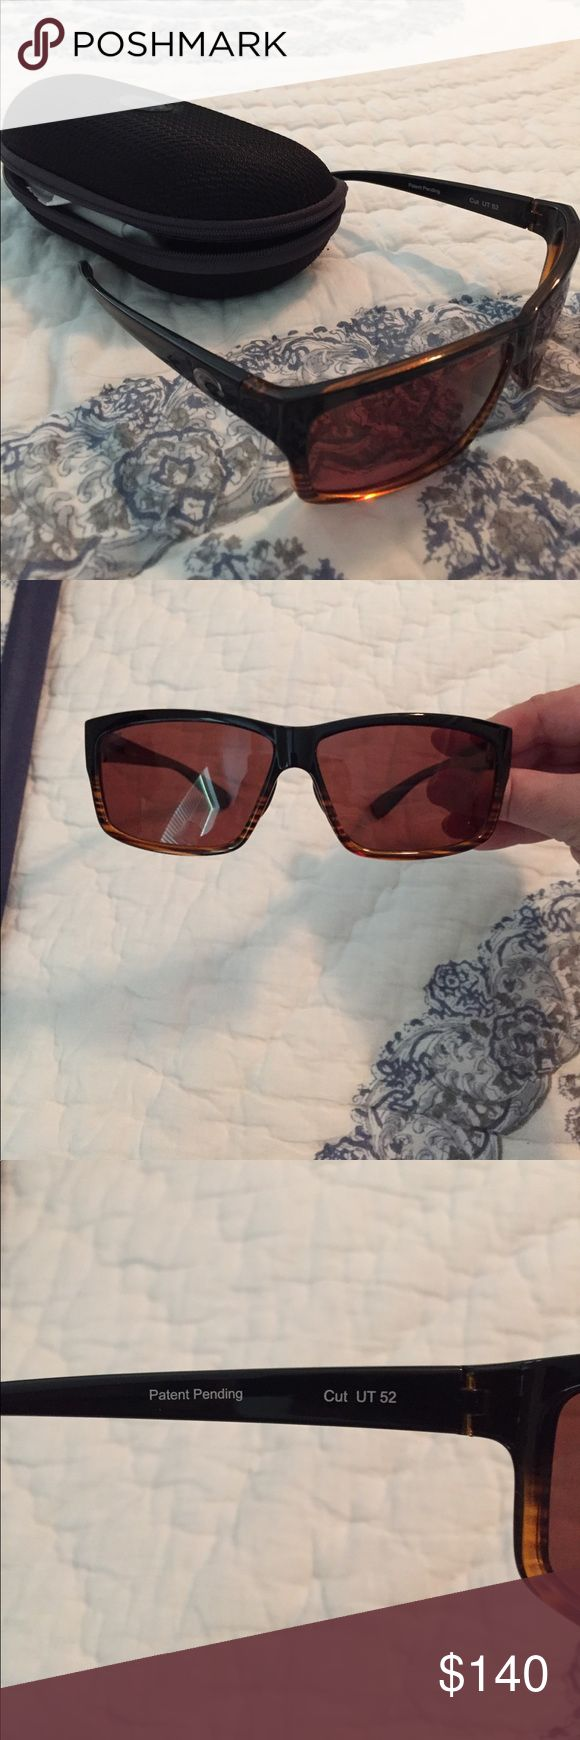 NWOT Costa Del Mar sunglasses New without tags brown polarized sunglasses! Were purchased for $205 for a gift but weren't the right style. Costa Del Mar Accessories Sunglasses